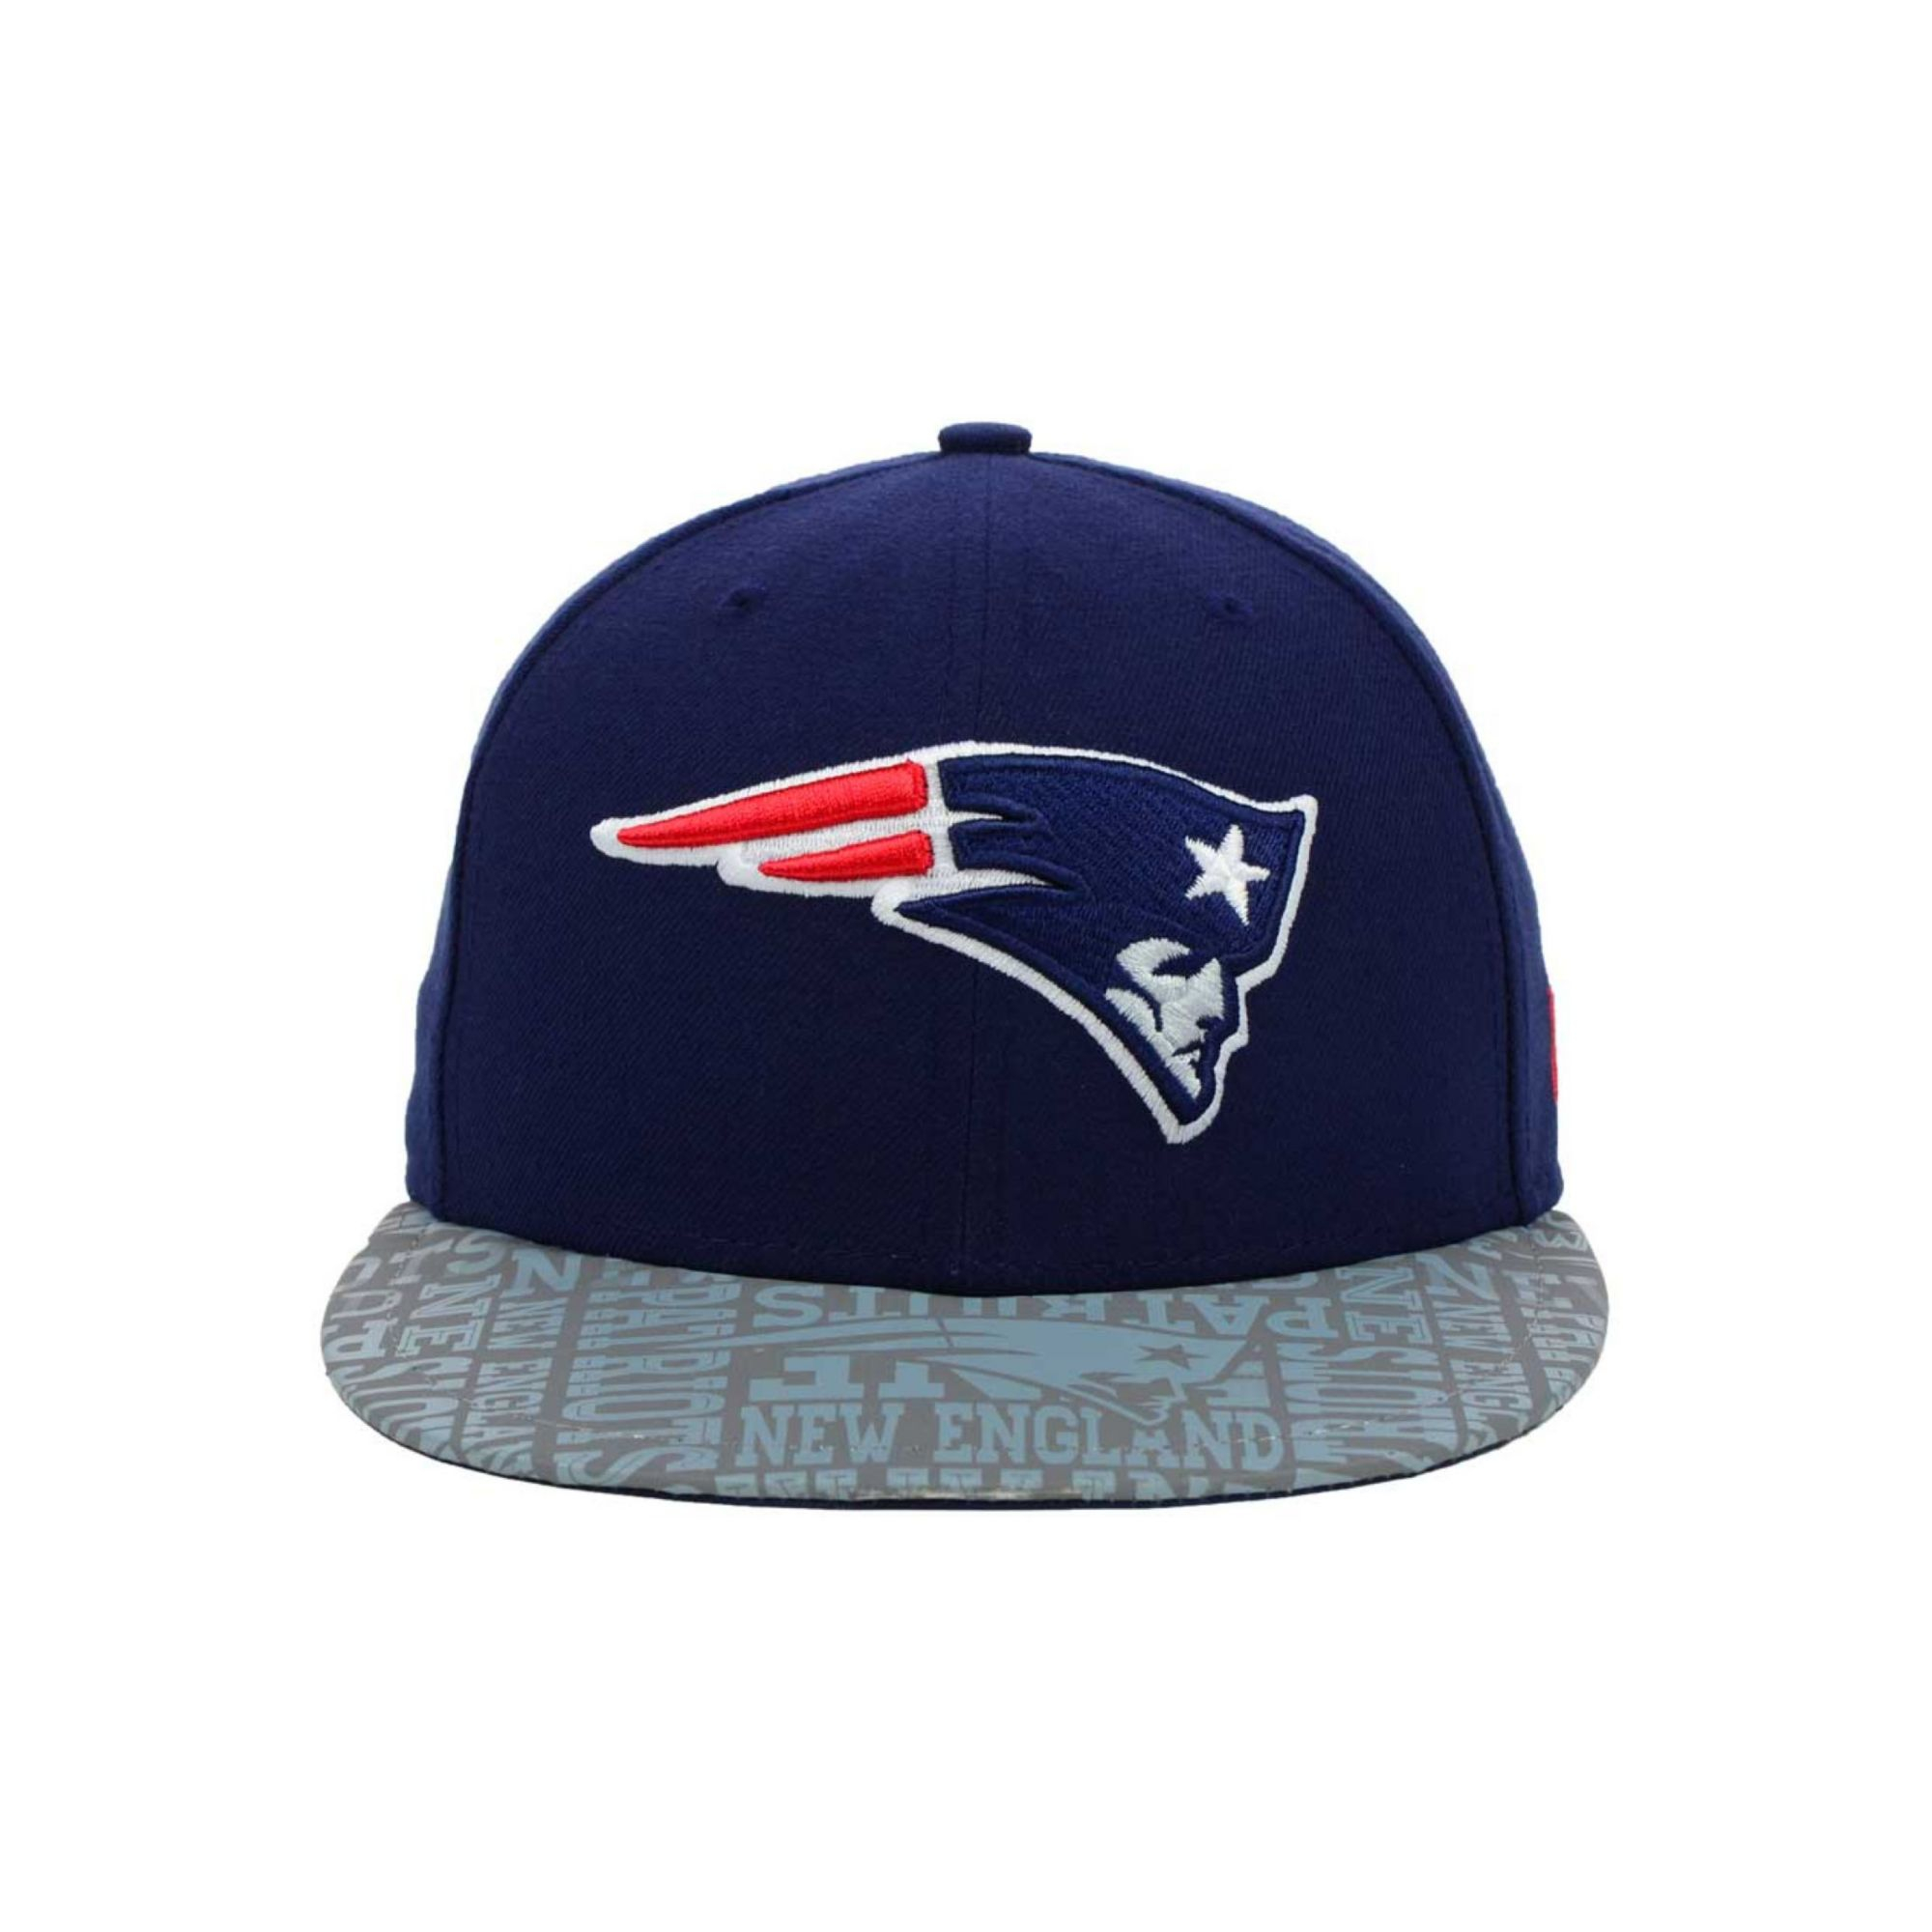 New era Kids New England Patriots Nfl Draft 59fifty Cap in Gray for Men Navy/Gray  Lyst